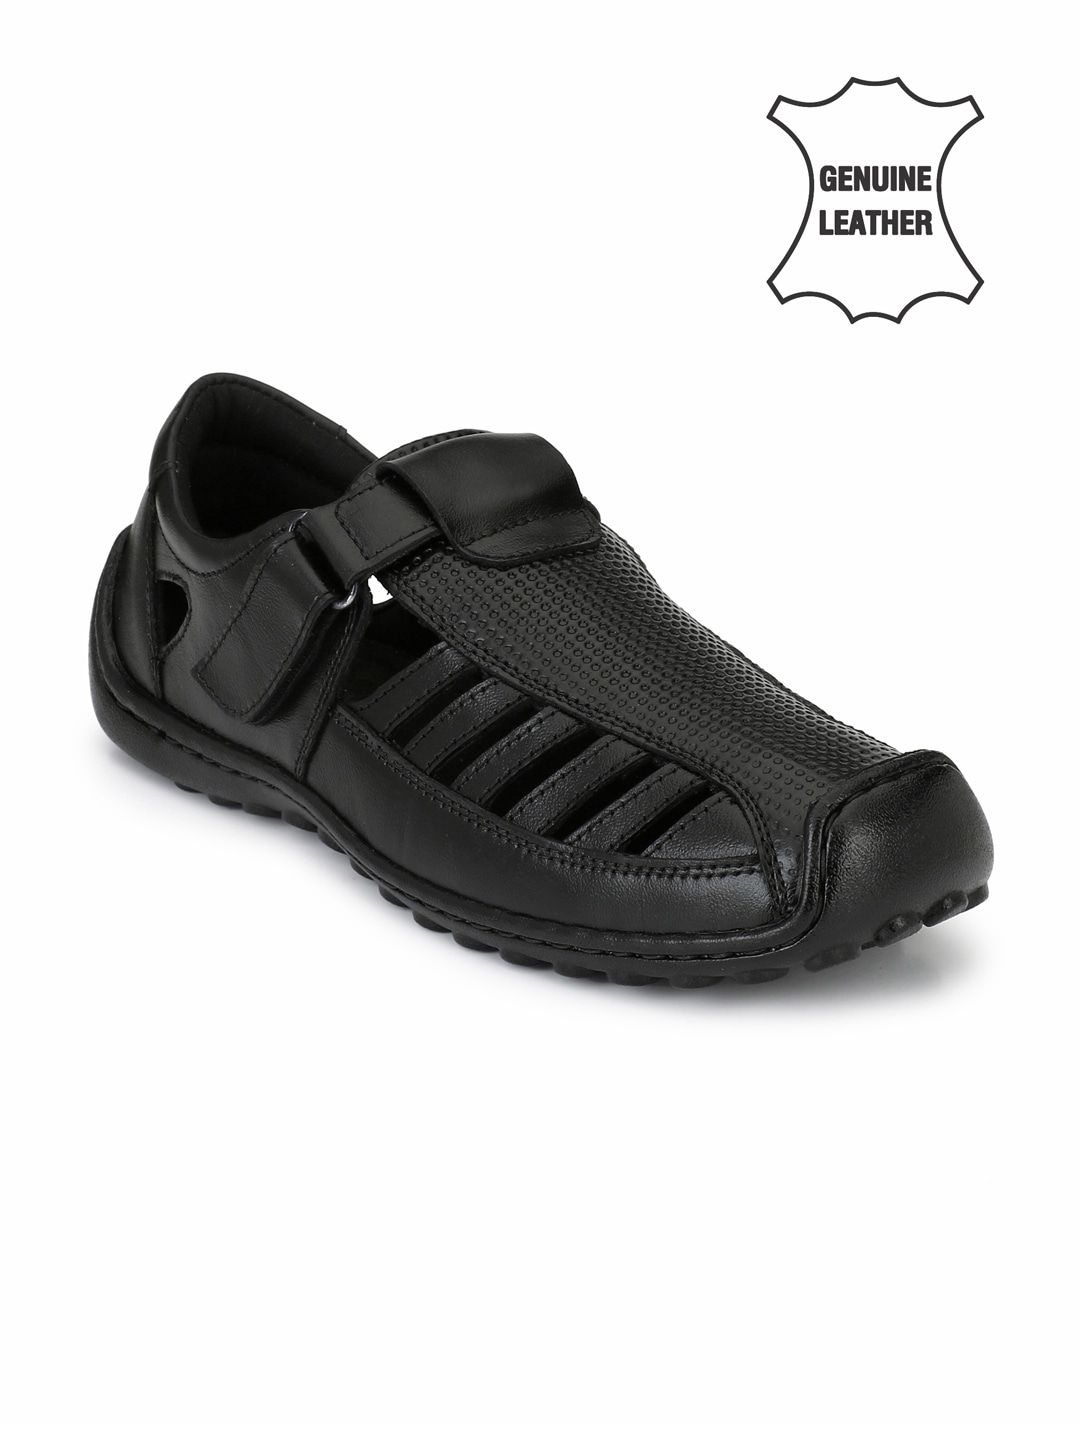 Black Genuine Leather Fisherman Sandals